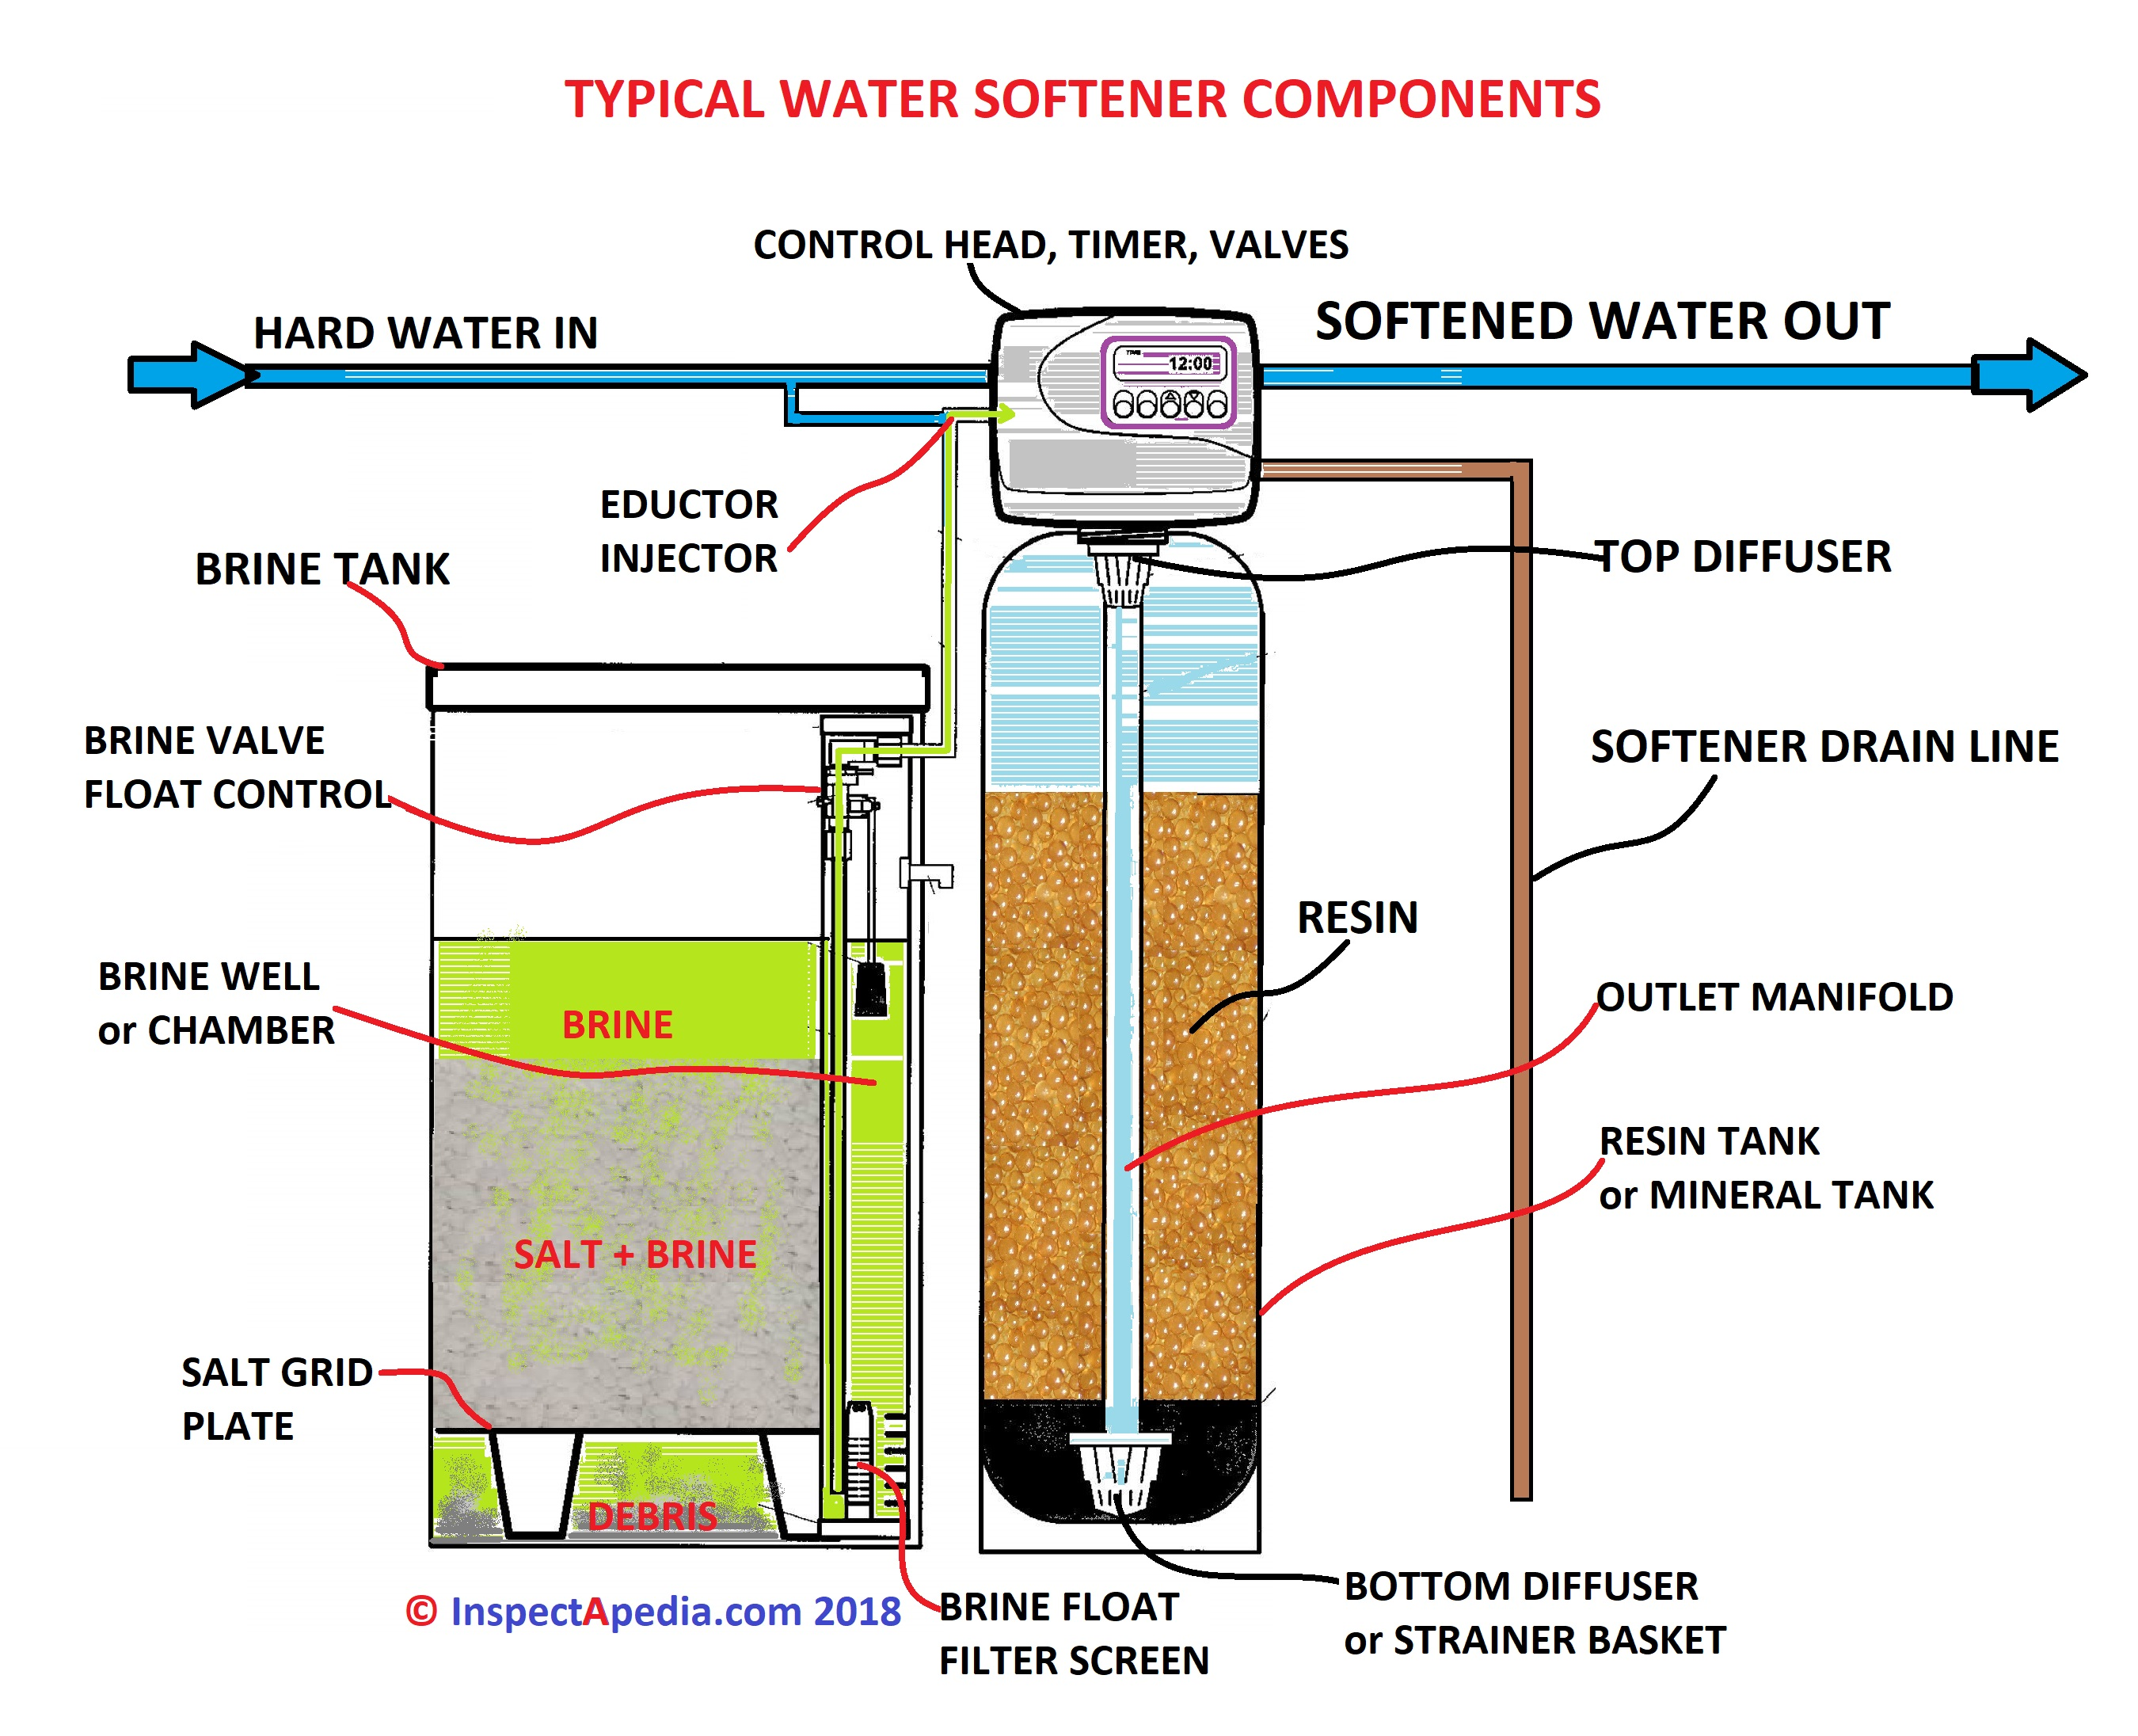 Water softener regeneration cycle duration fix a long water softener identify the basic parts of a water softener c daniel friedman at inspectapedia fandeluxe Gallery